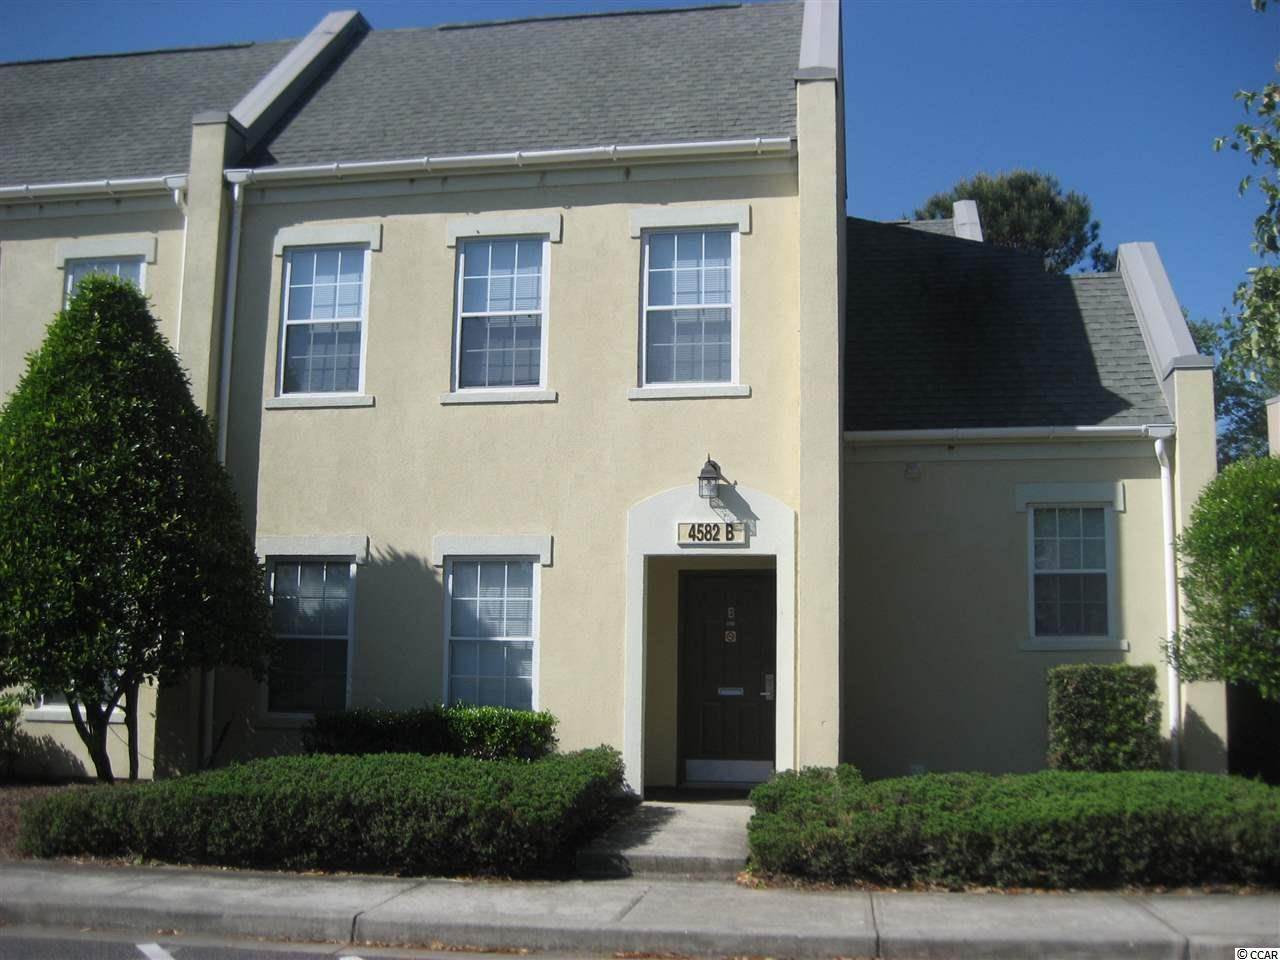 Condo MLS:1806013 Turnberry Park at the Legends  4582B Girvan Dr. Myrtle Beach SC